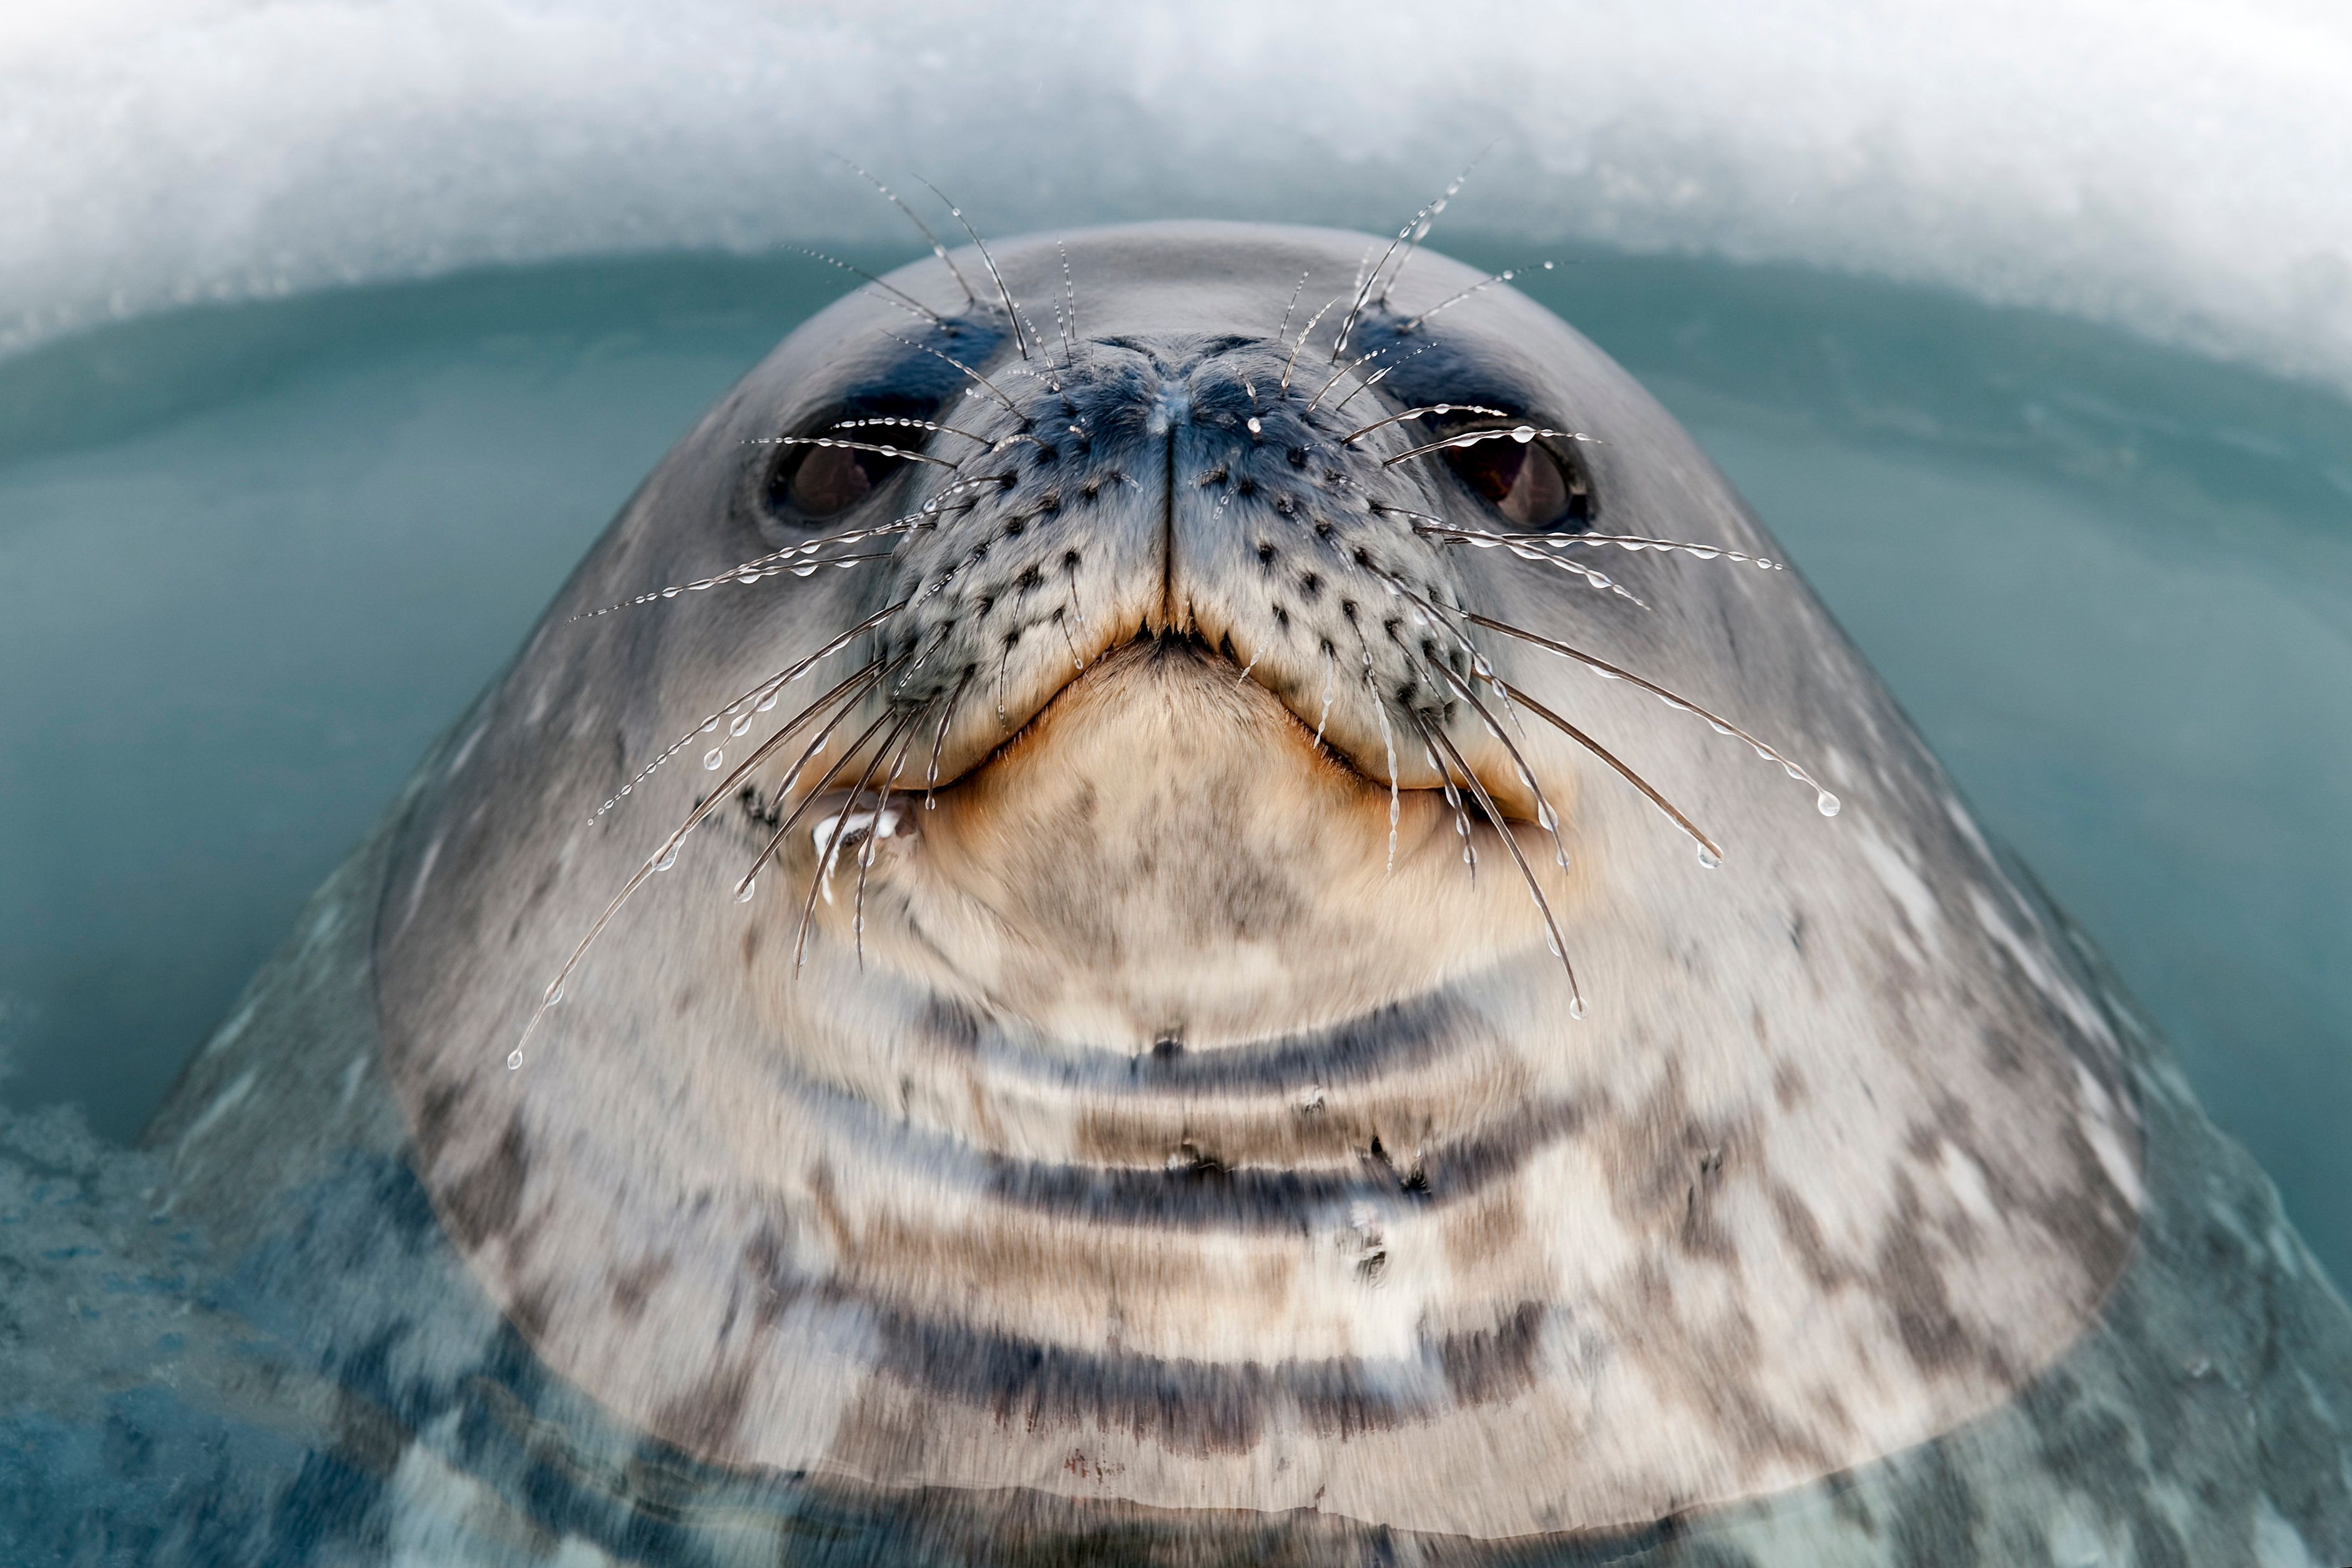 A Weddell Seal pokes through an ice